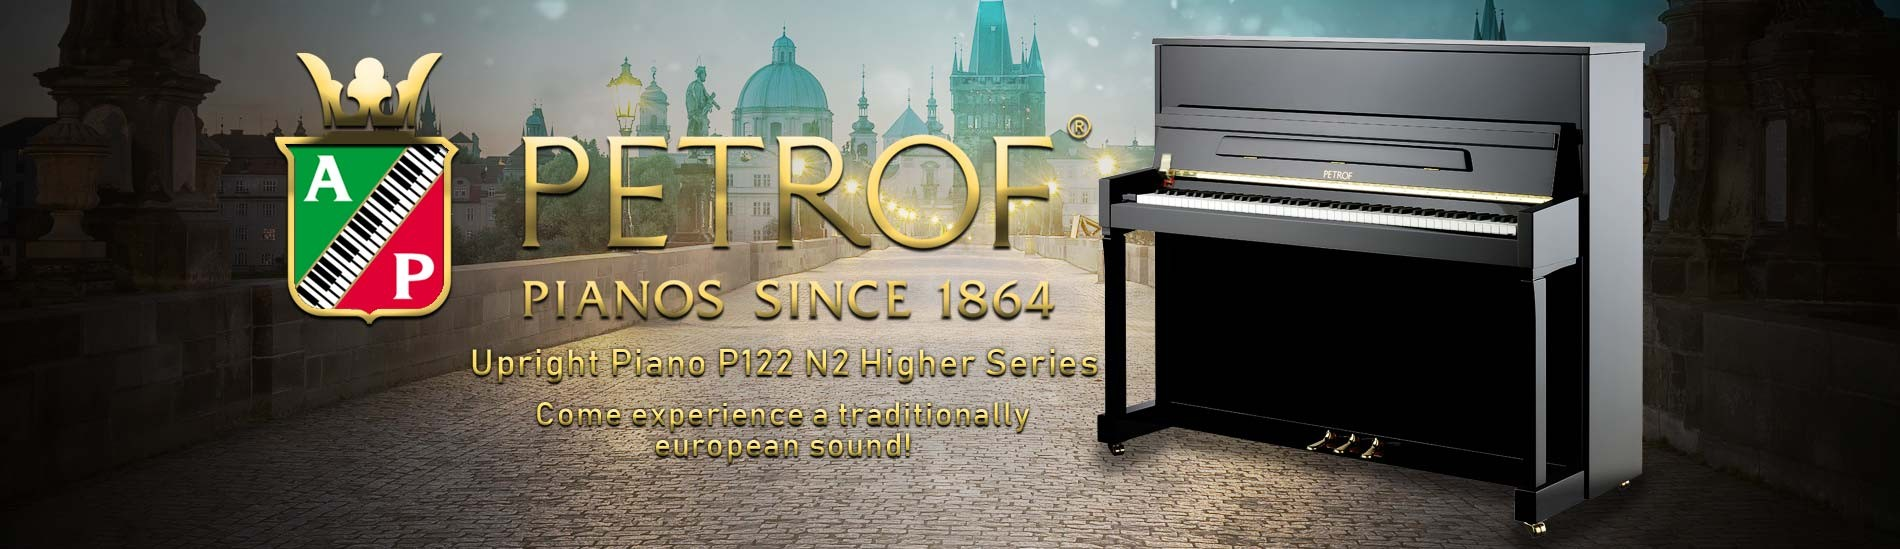 Petrof Upright Piano P122 N2 Higher Series - Come experience a traditionally european sound!